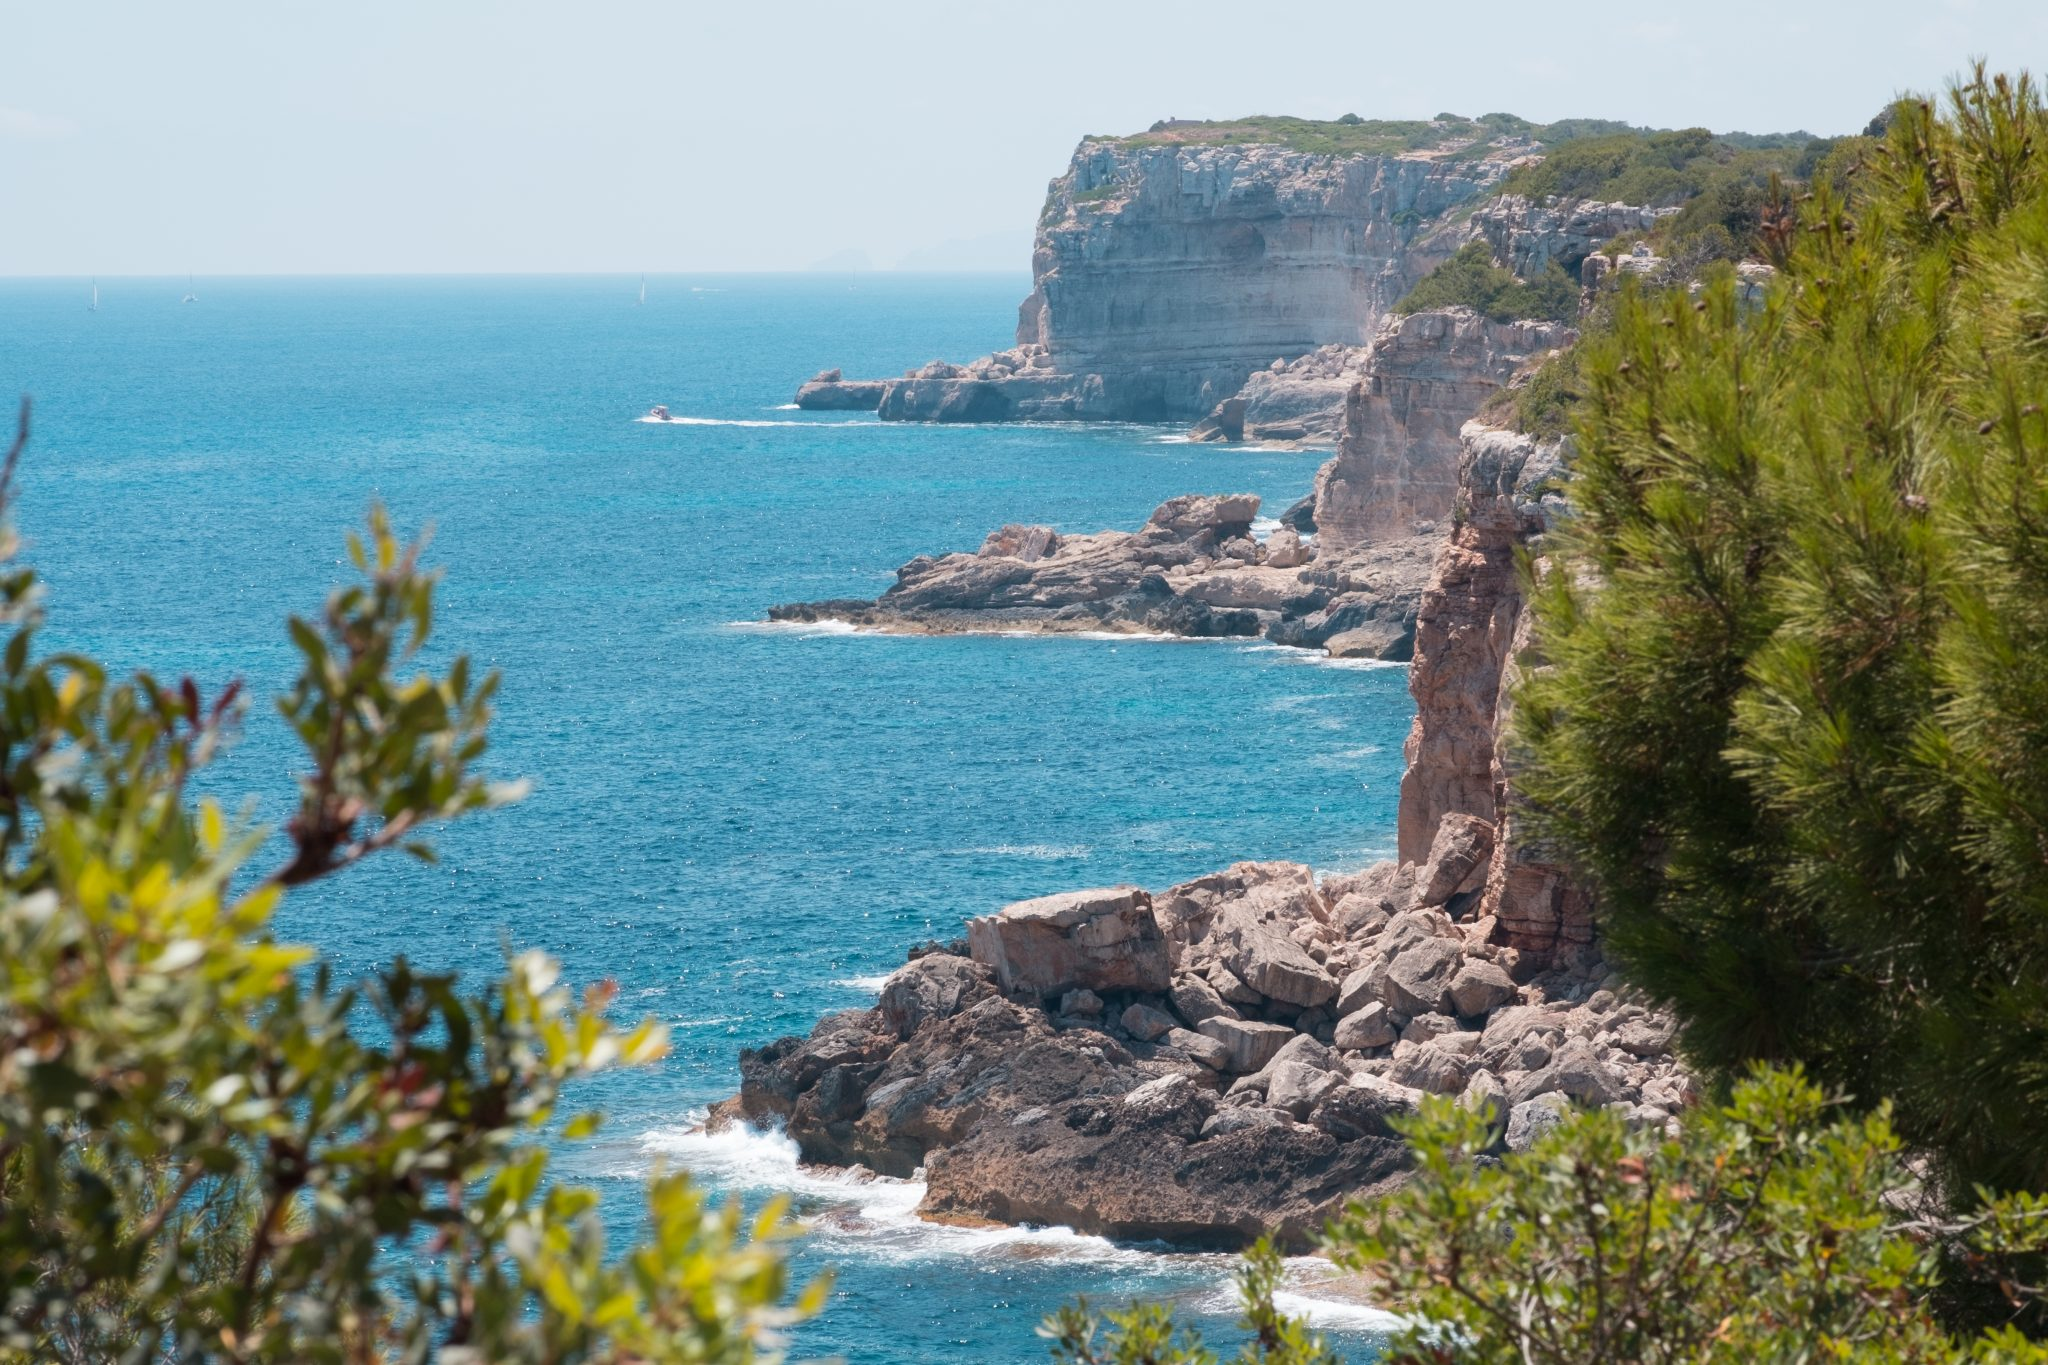 View of the cliffs in Mallorca Caló d'es Moro, Santanyí photo by Jo Kassis